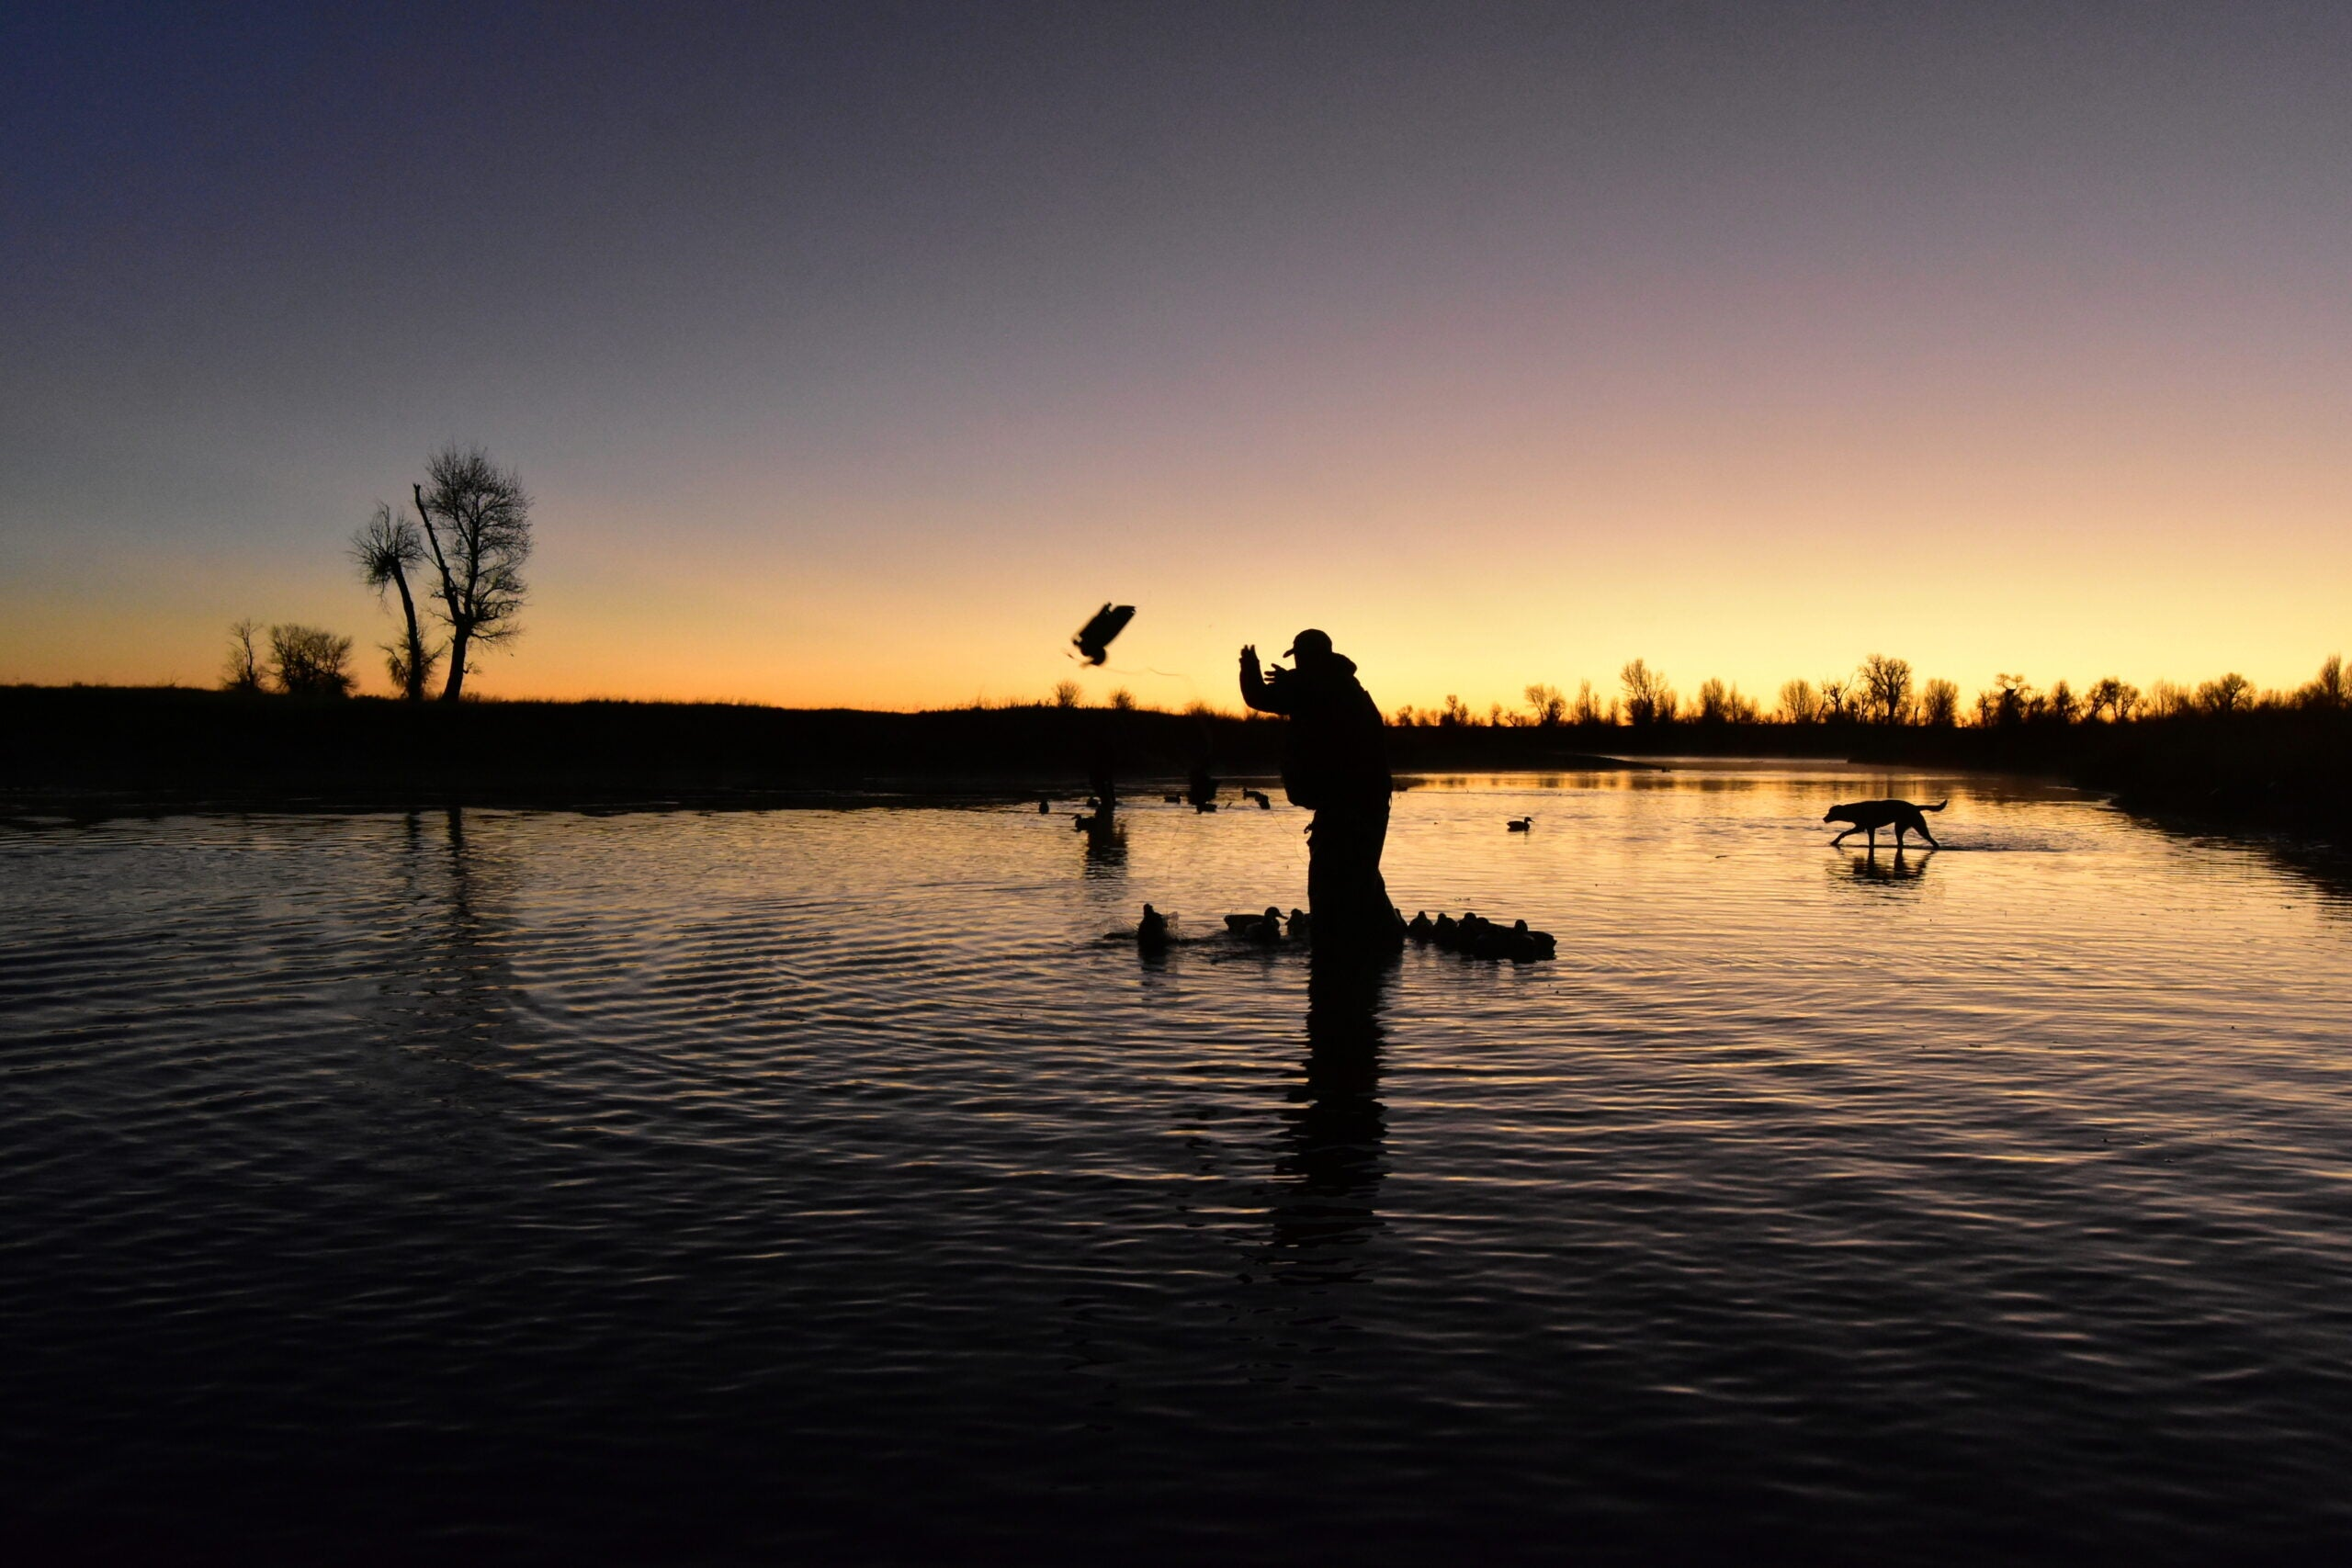 A duck hunter tosses out decoys in the pre-dawn light.